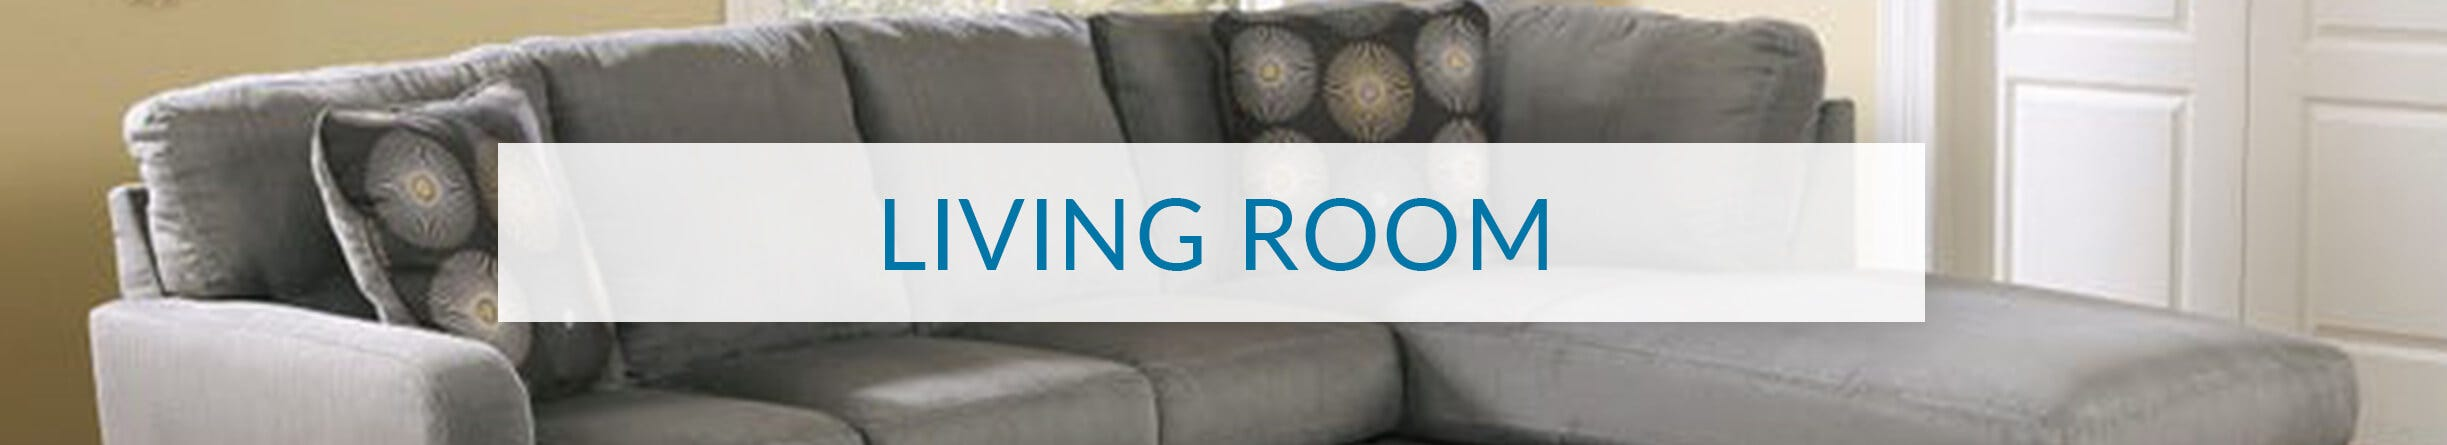 Shop Living Room Furniture at US-Mattress.com